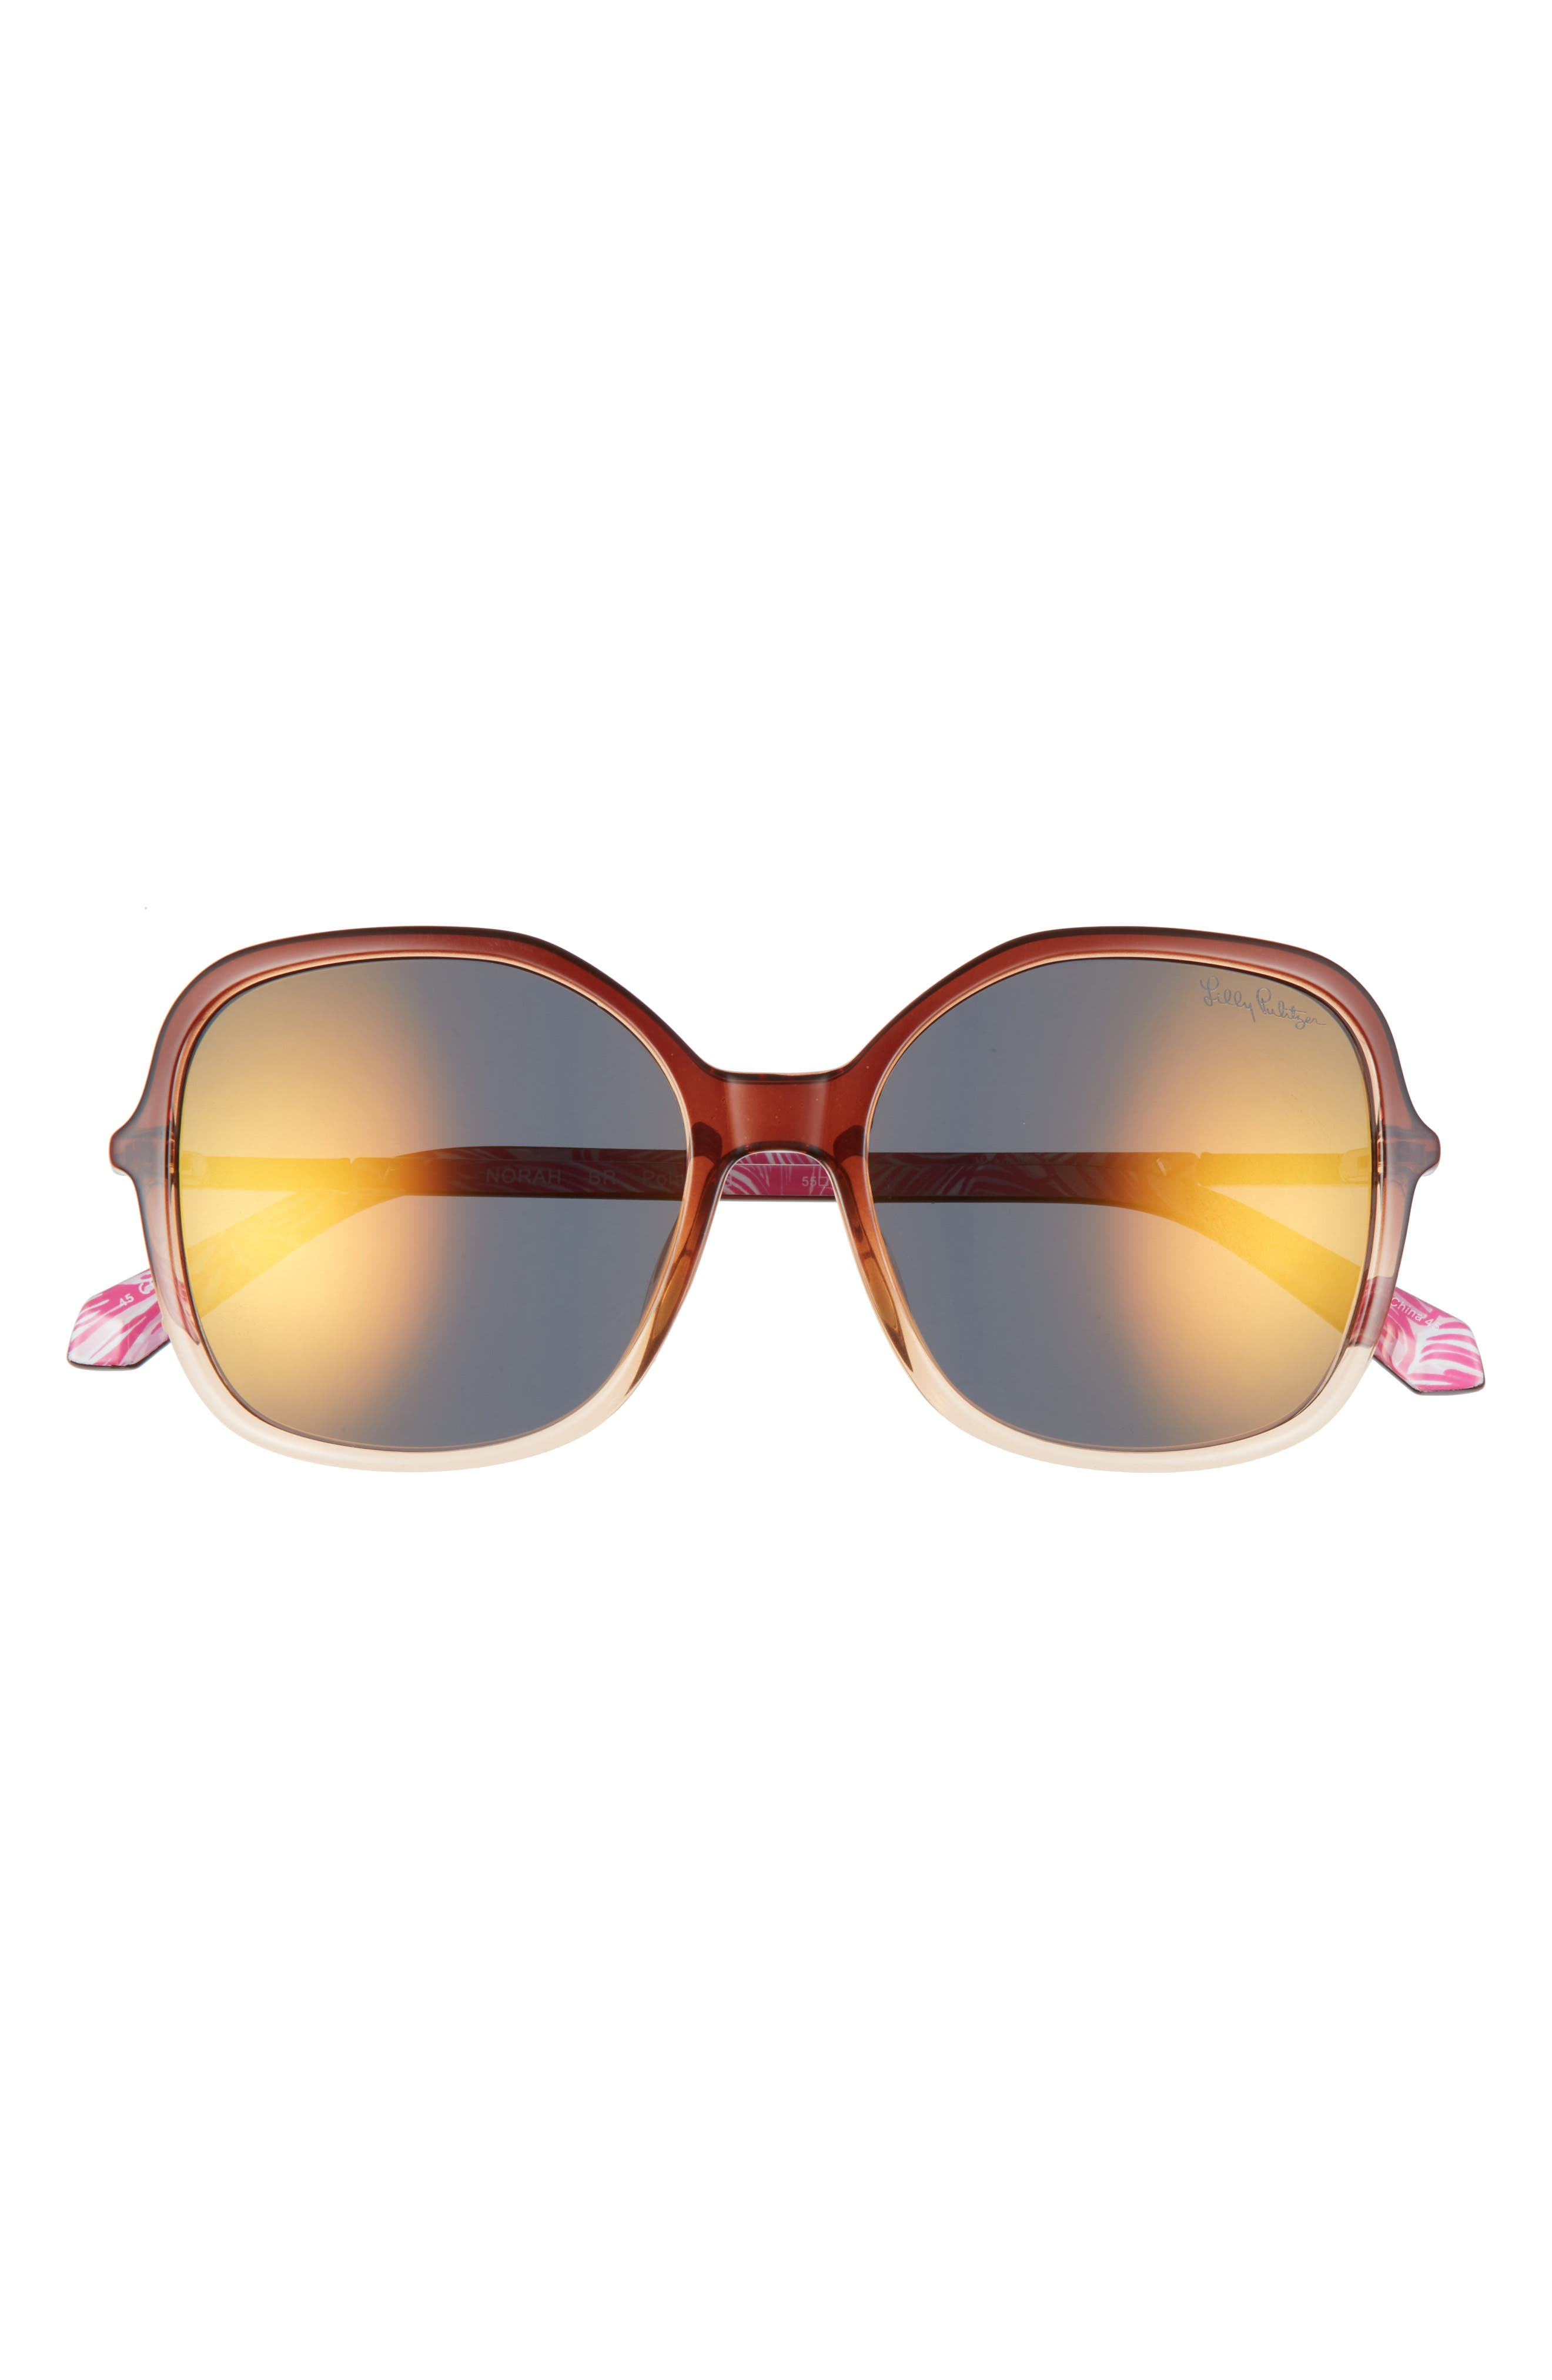 Square frames play up the vintage-cool style of these essential sunglasses furnished with glare-reducing, scratch-resistant polarized lenses. Style Name: Lilly Pulitzer Norah 55mm Polarized Square Sunglasses. Style Number: 6104394. Available in stores.